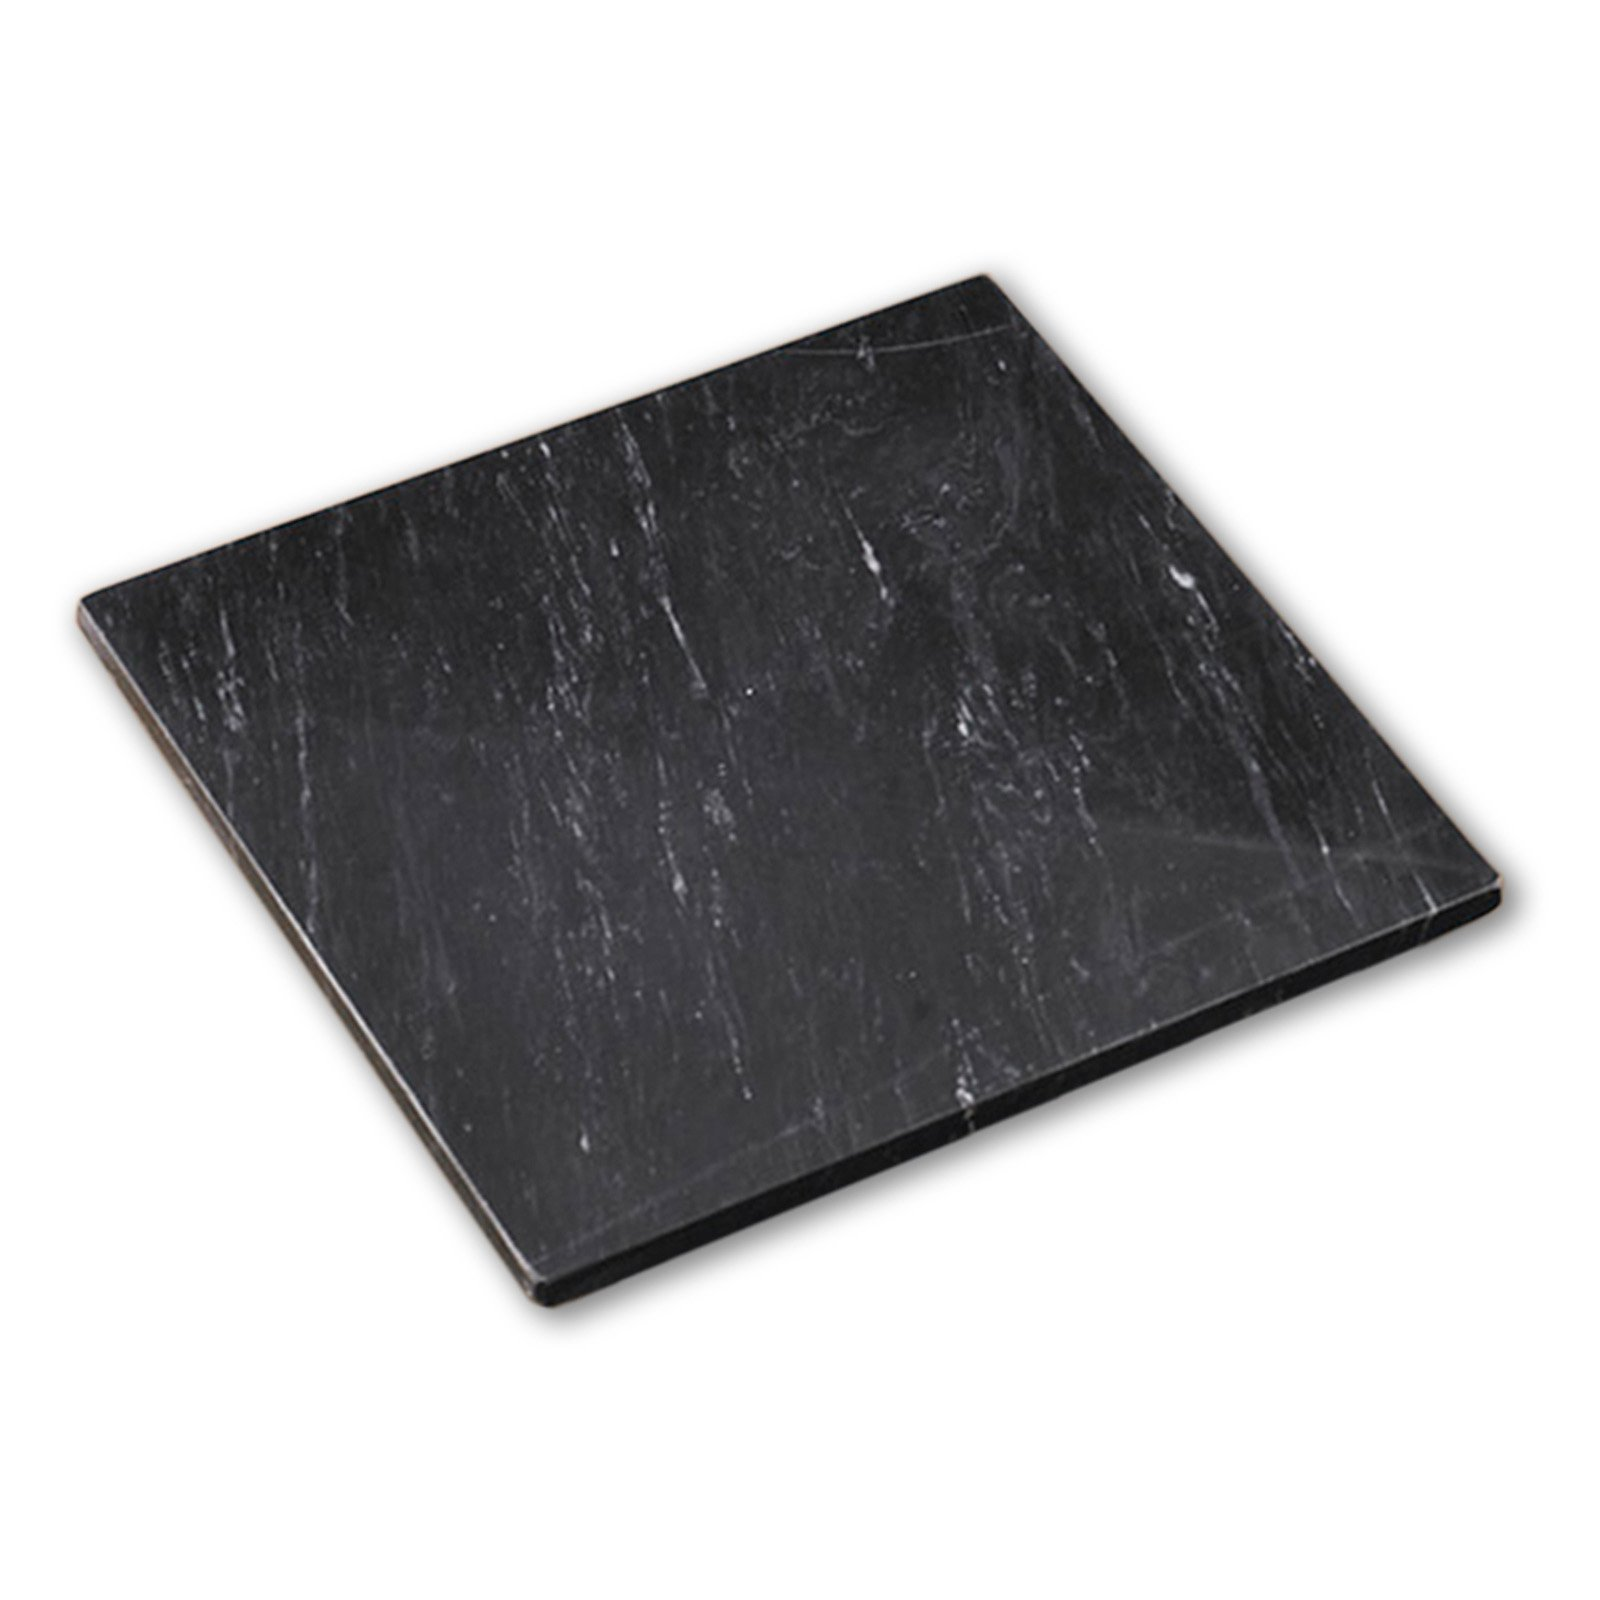 Creative Home Champagne Marble 12 x 12 in. Pastry Board